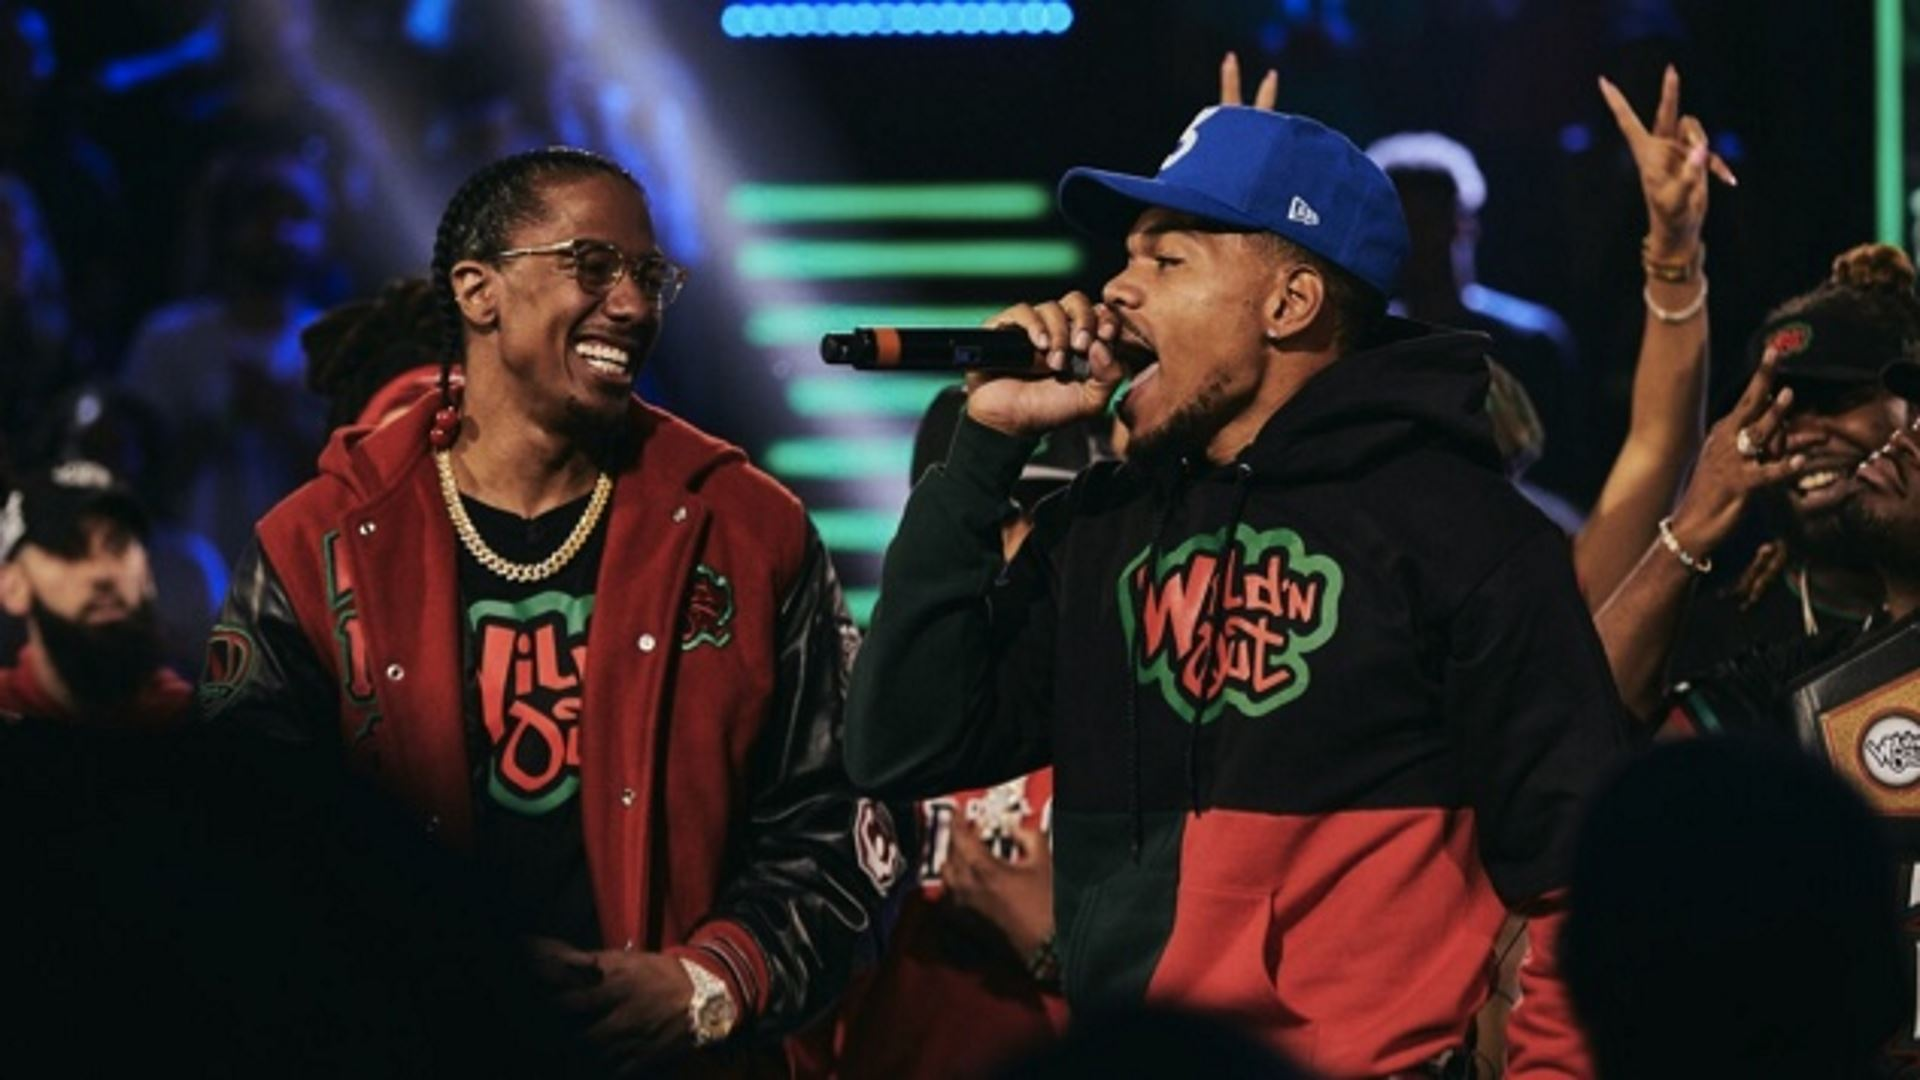 wild n out episode guide